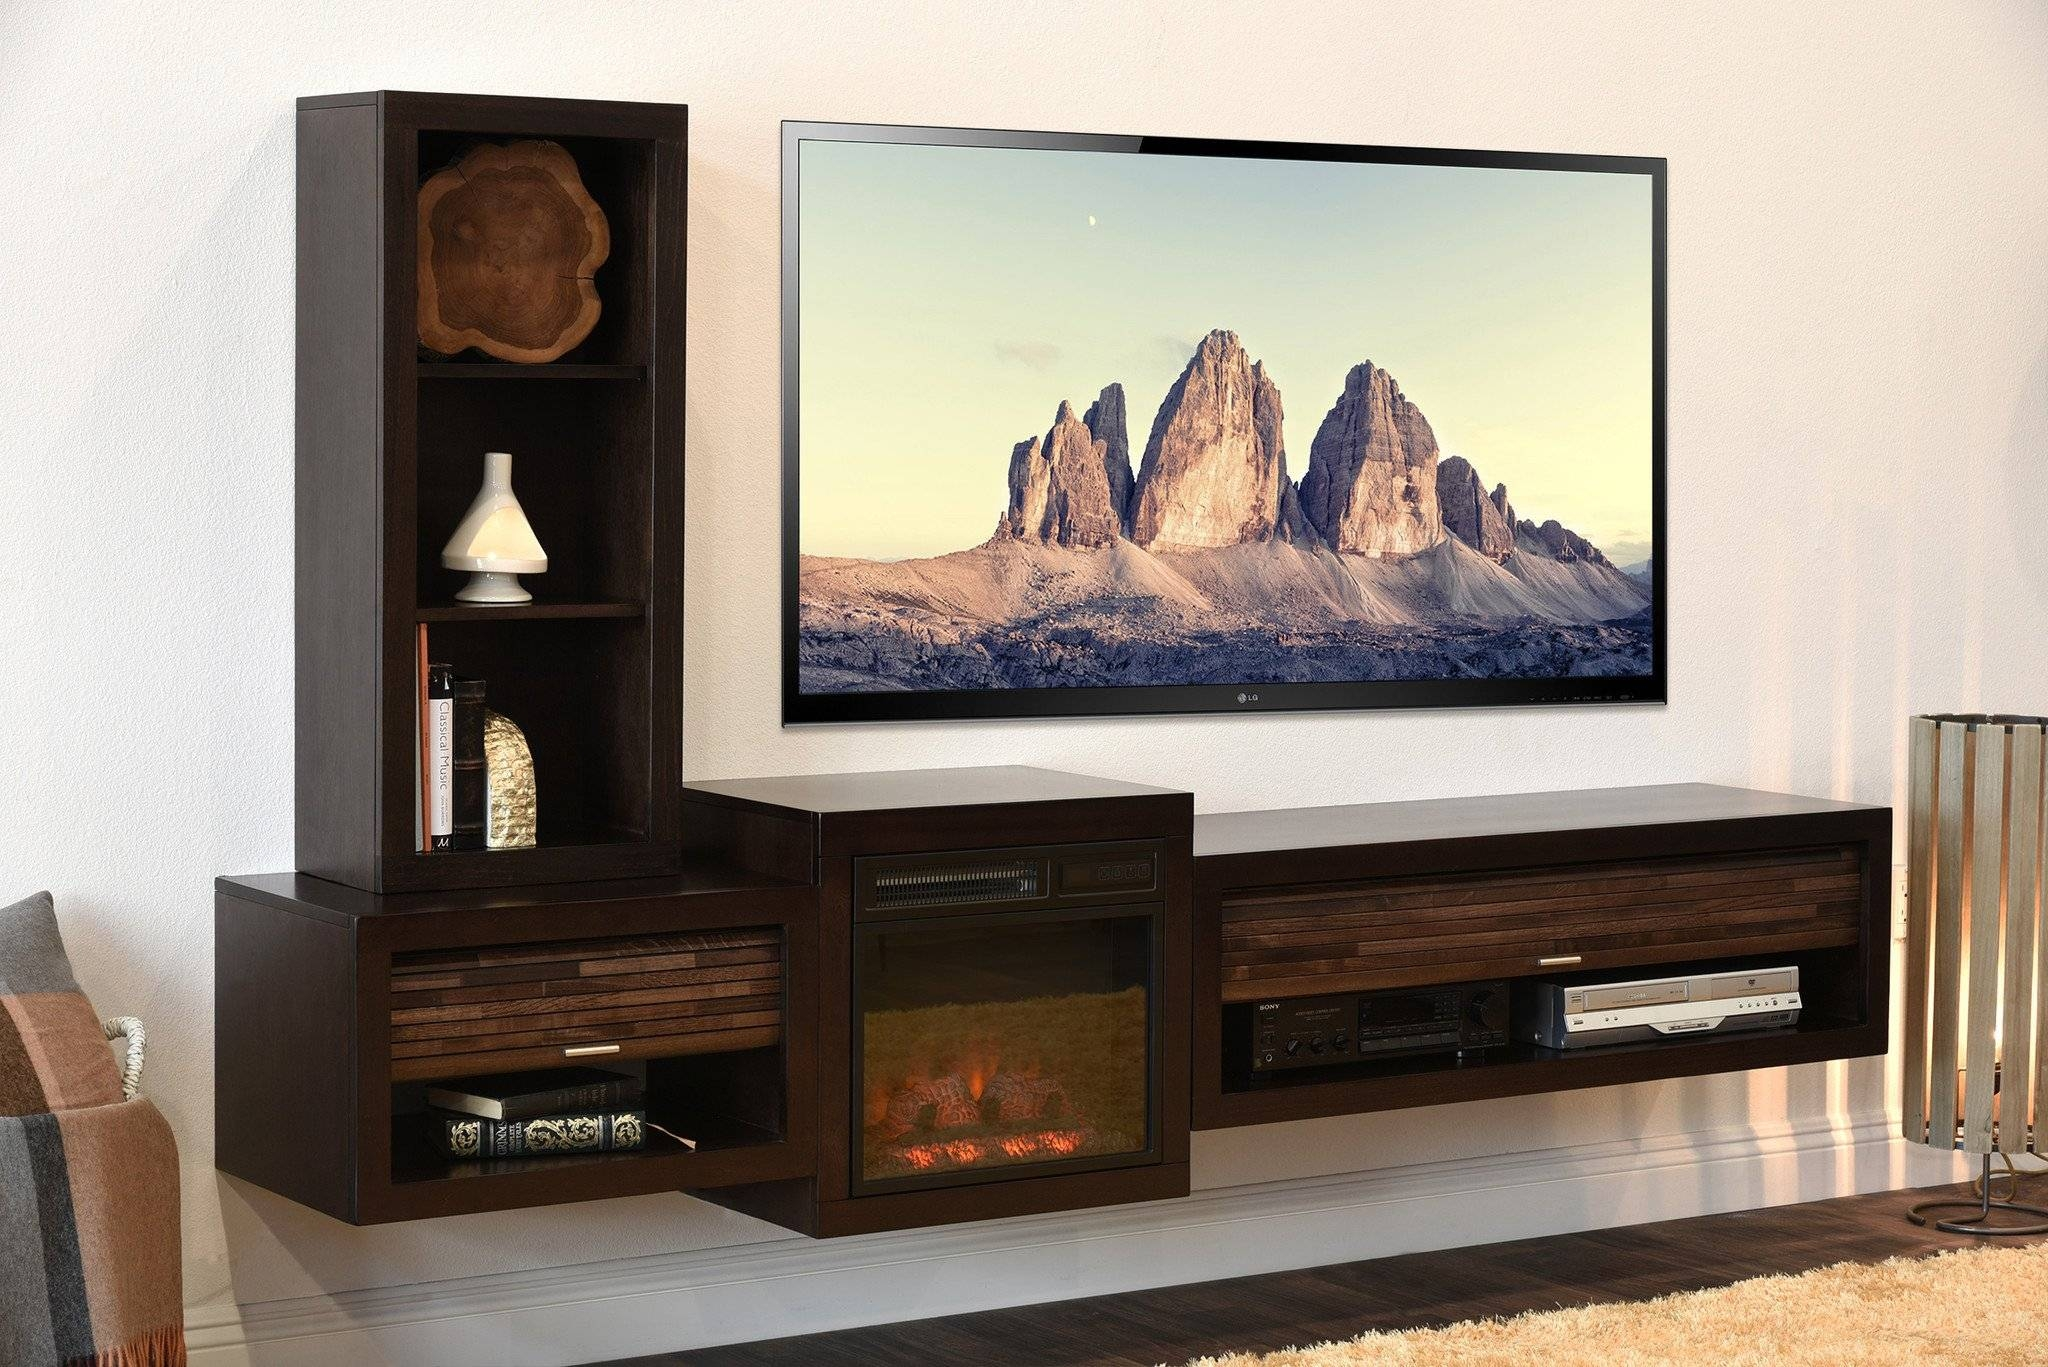 Cabinet: Nice Dark Wood Floating Tv Stand With Fireplace Eco And for Dark Wood Tv Stands (Image 4 of 15)